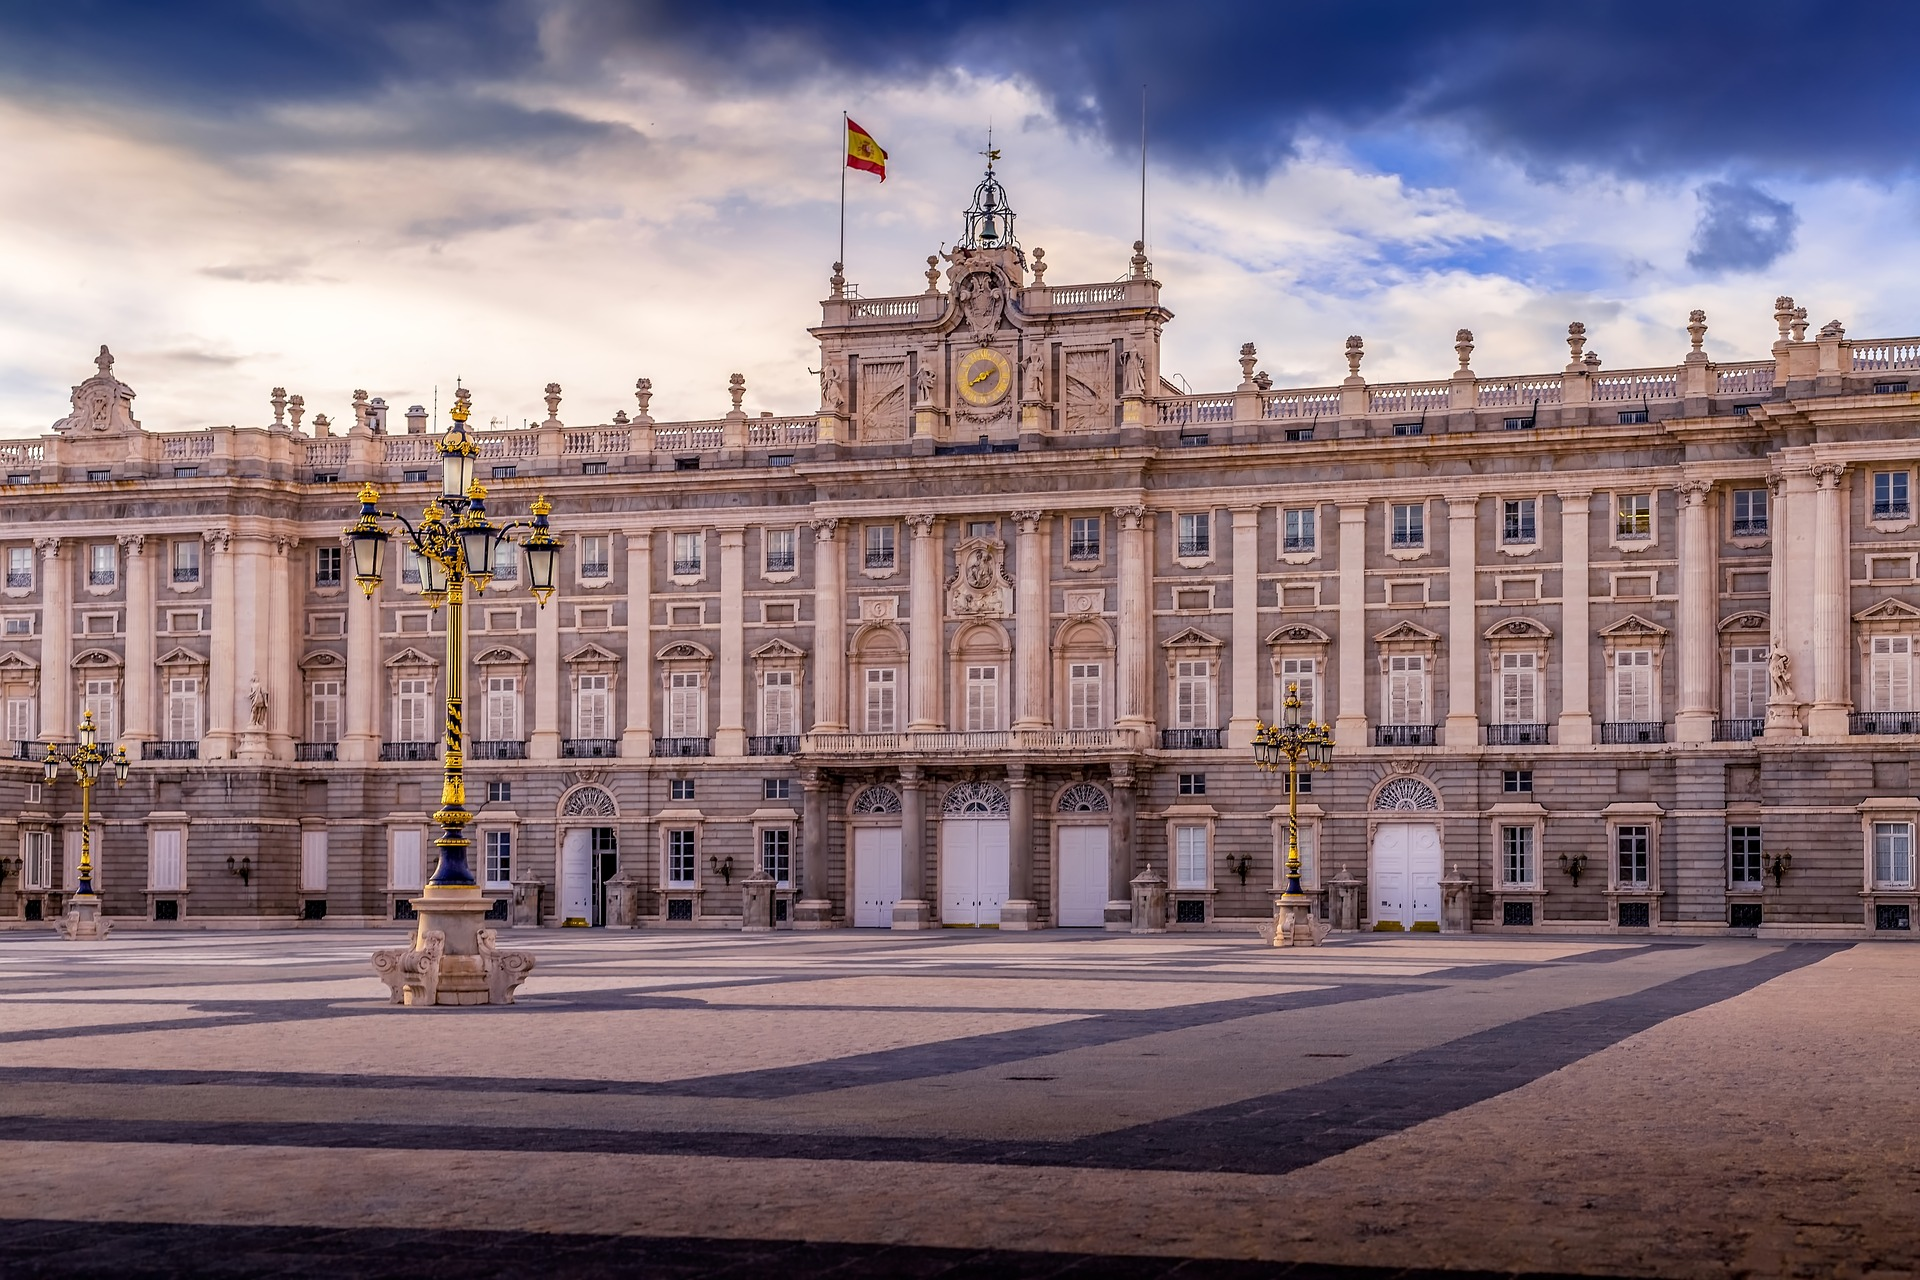 Sightseeing and food will be the agenda for a February-to-March stay in Madrid.